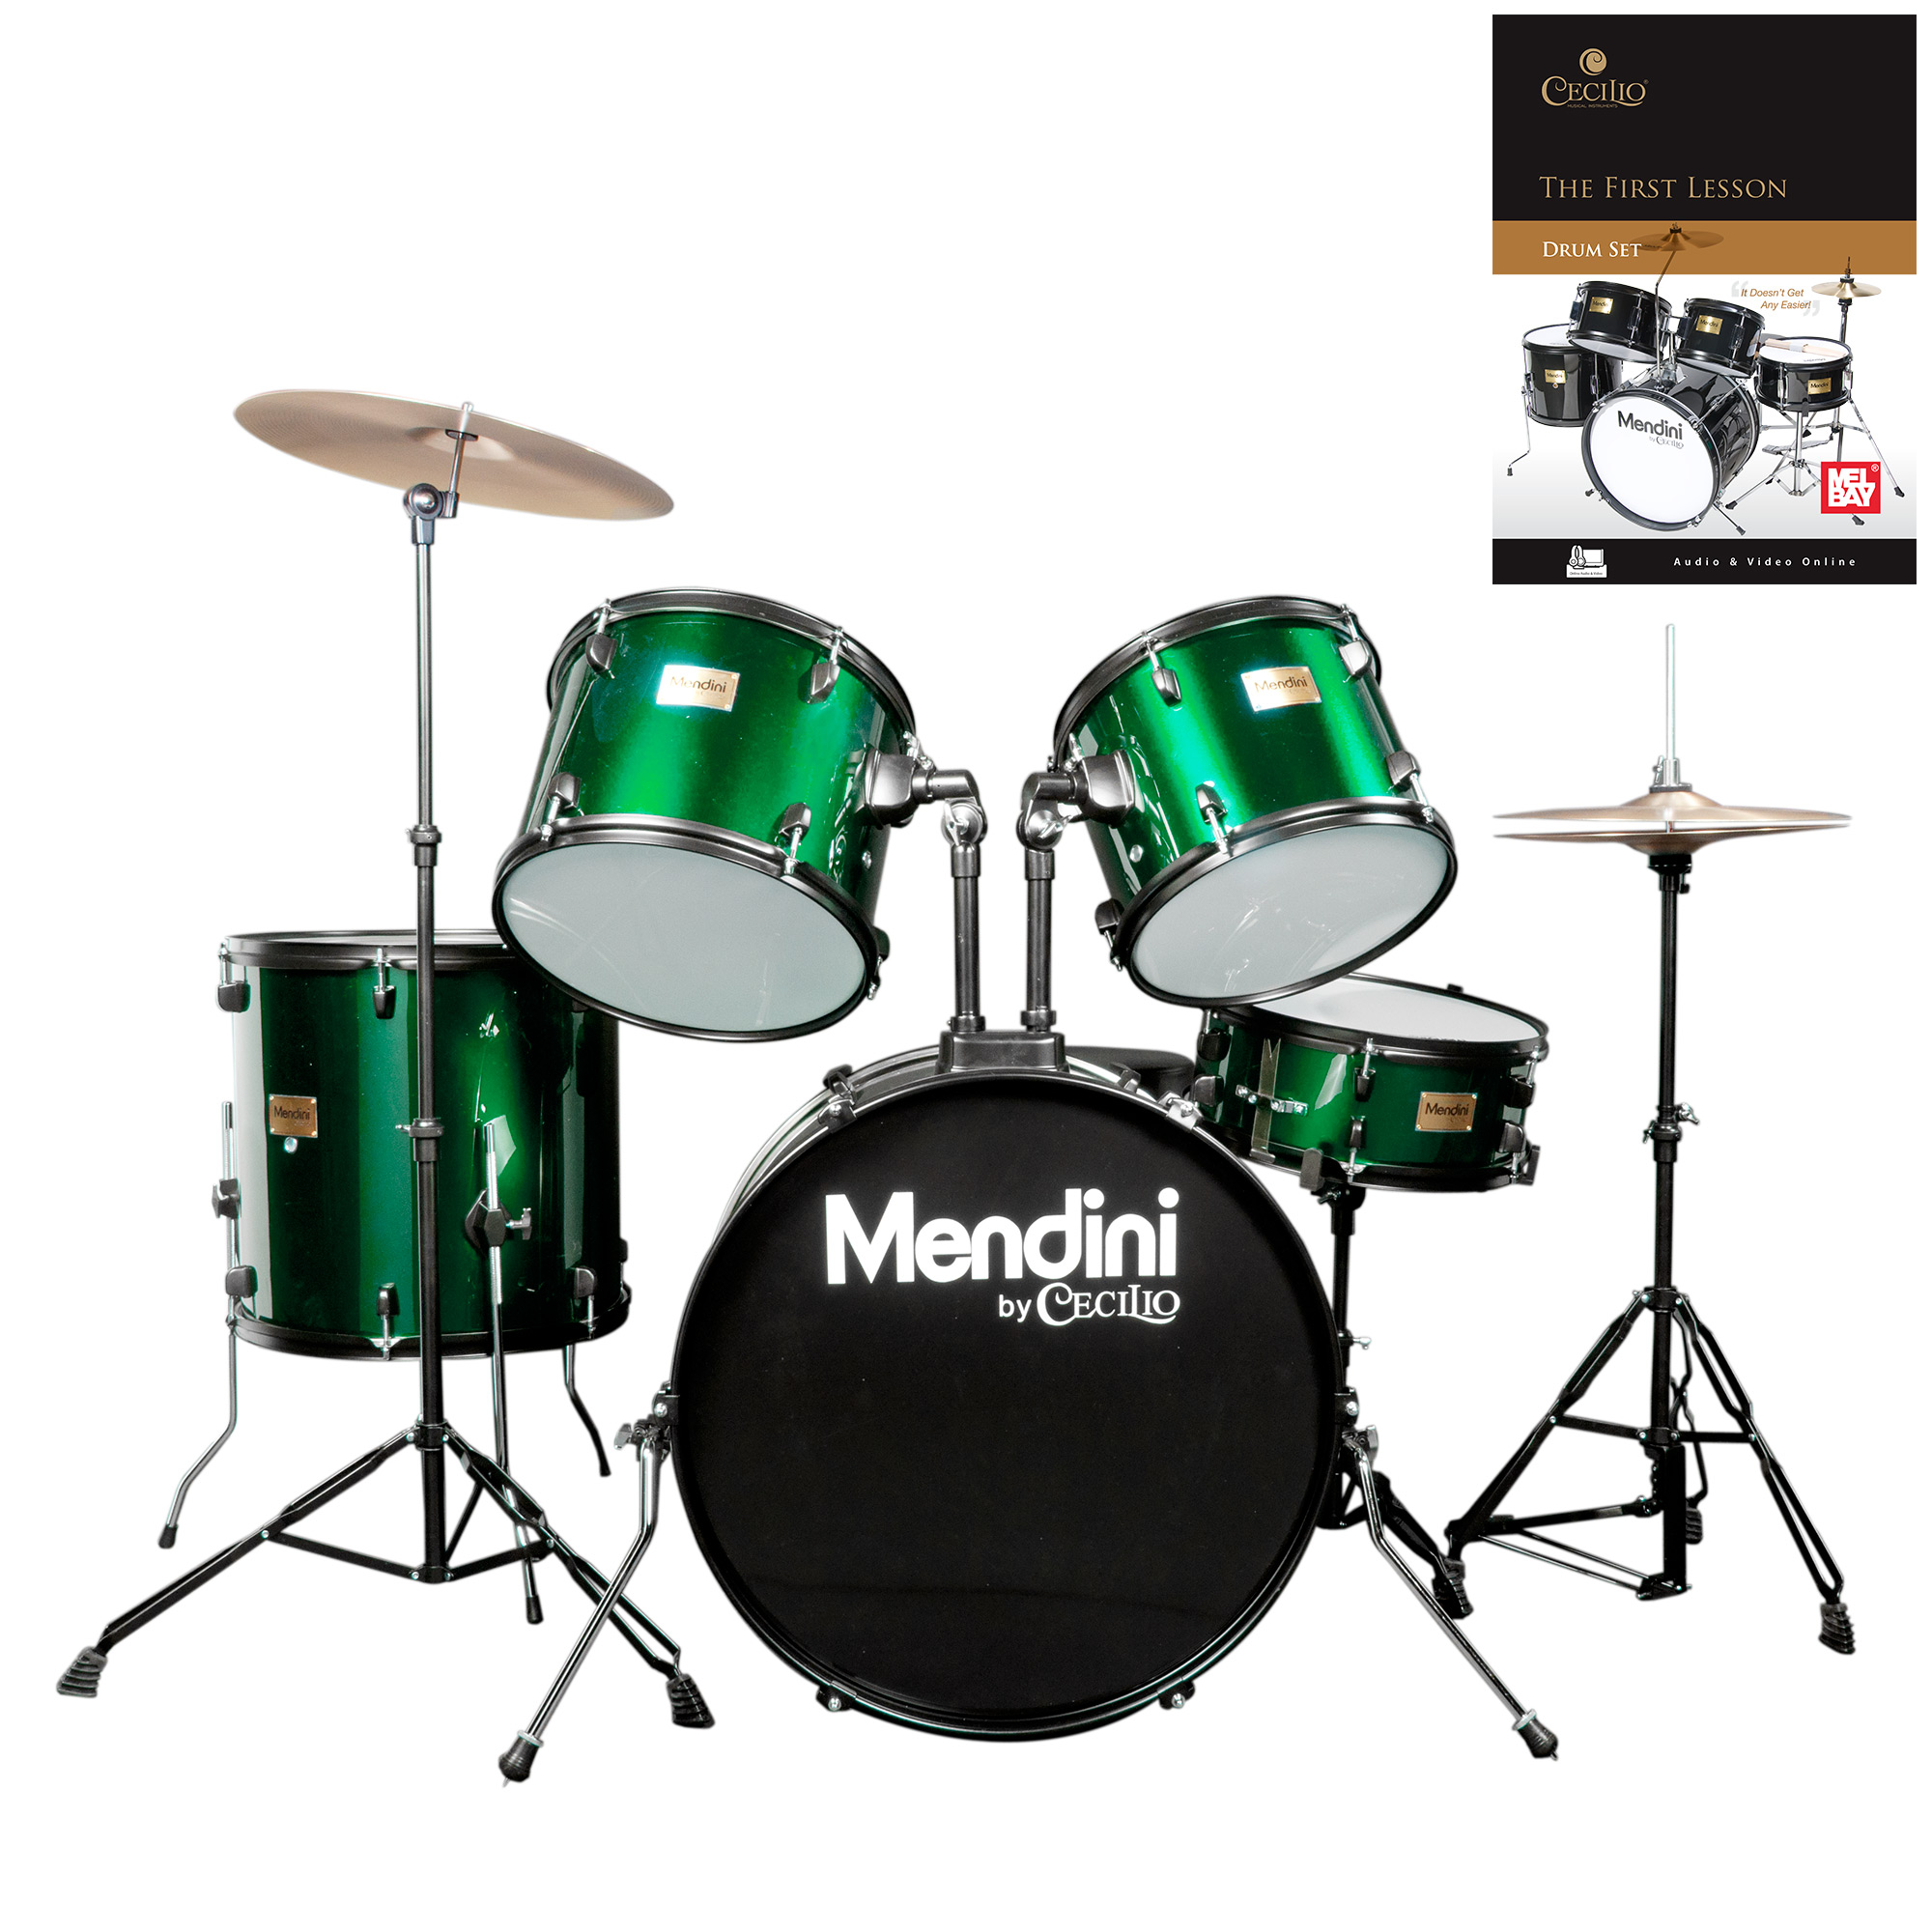 Mendini by Cecilio Complete Full Size 5-Piece Adult Drum Set w/ Cymbals Pedal Throne Sticks, Lesson Book, Metallic Green MDS80-GN